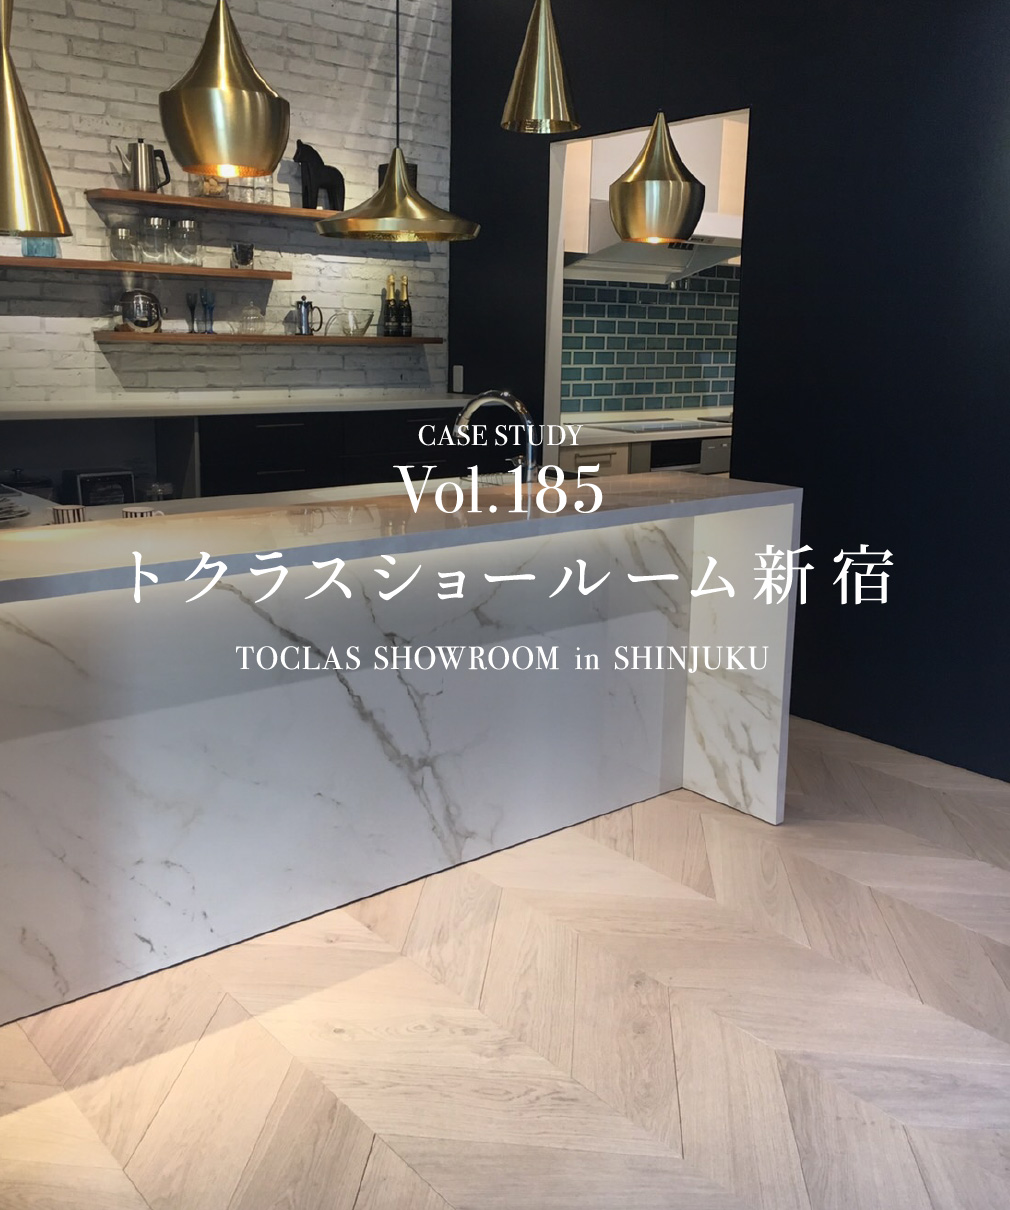 CASE STUDY Vol.185 トクラスショールーム新宿 TOCLAS SHOWROOM in SHINJUKU